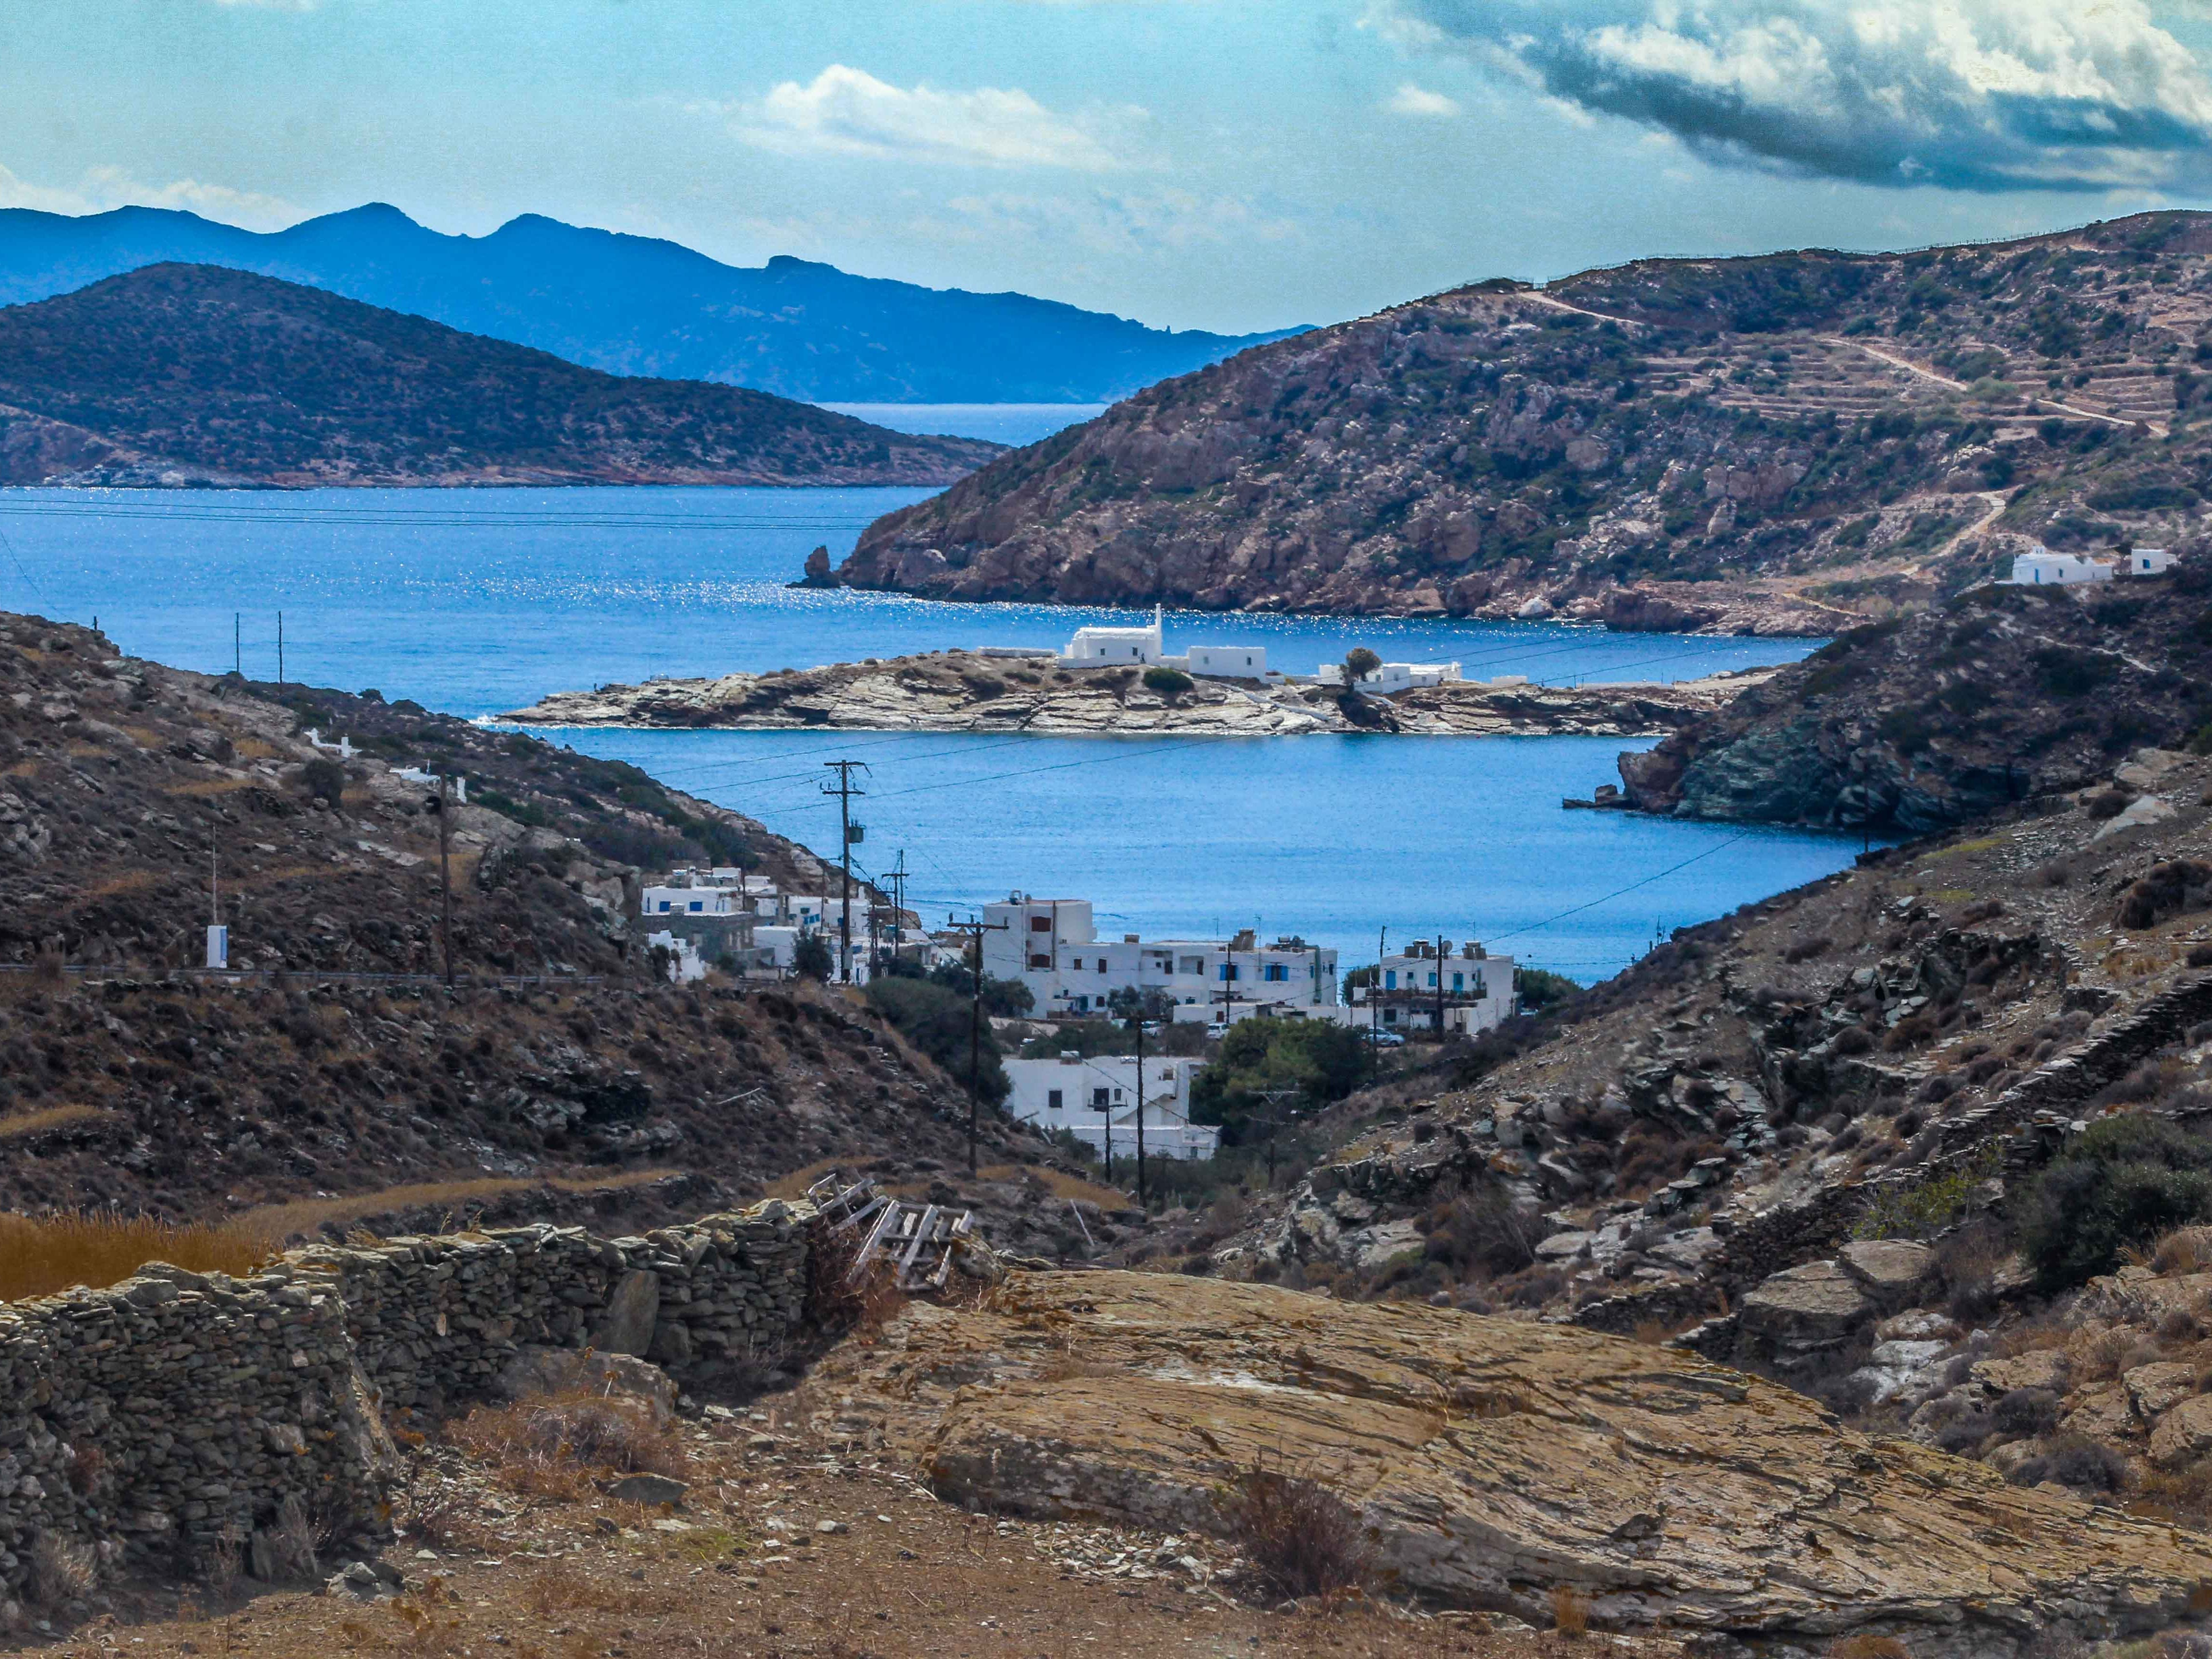 Everywhere you turn on Sifnos dramatic views abound. On the road to Platis Gialos, the rugged terrain and contrast of colors create an eye-popping photo opportunity at dusk.